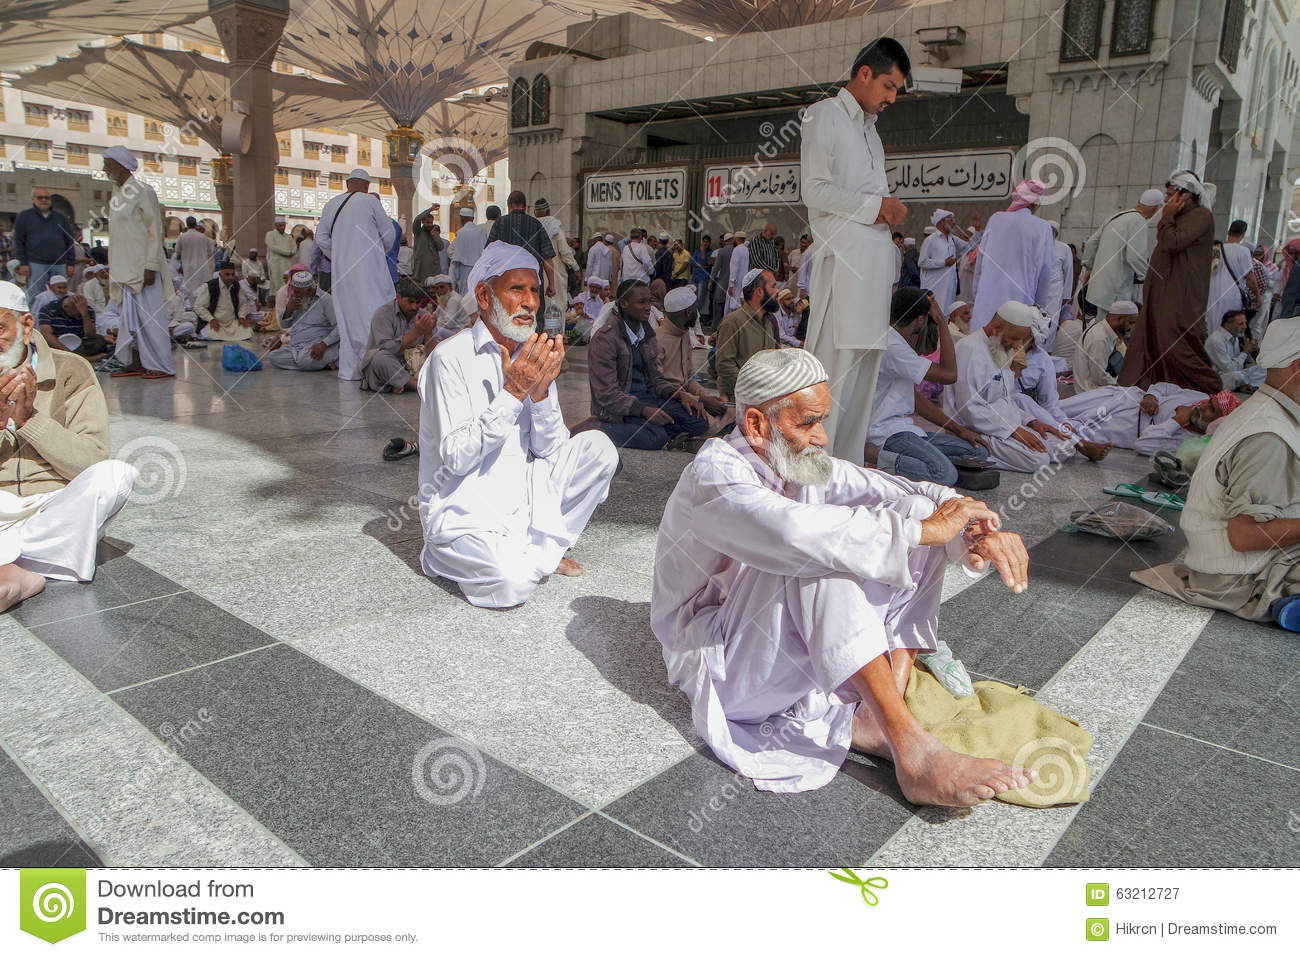 Unidentified People Are Reciting Doa And Al-Quran At The